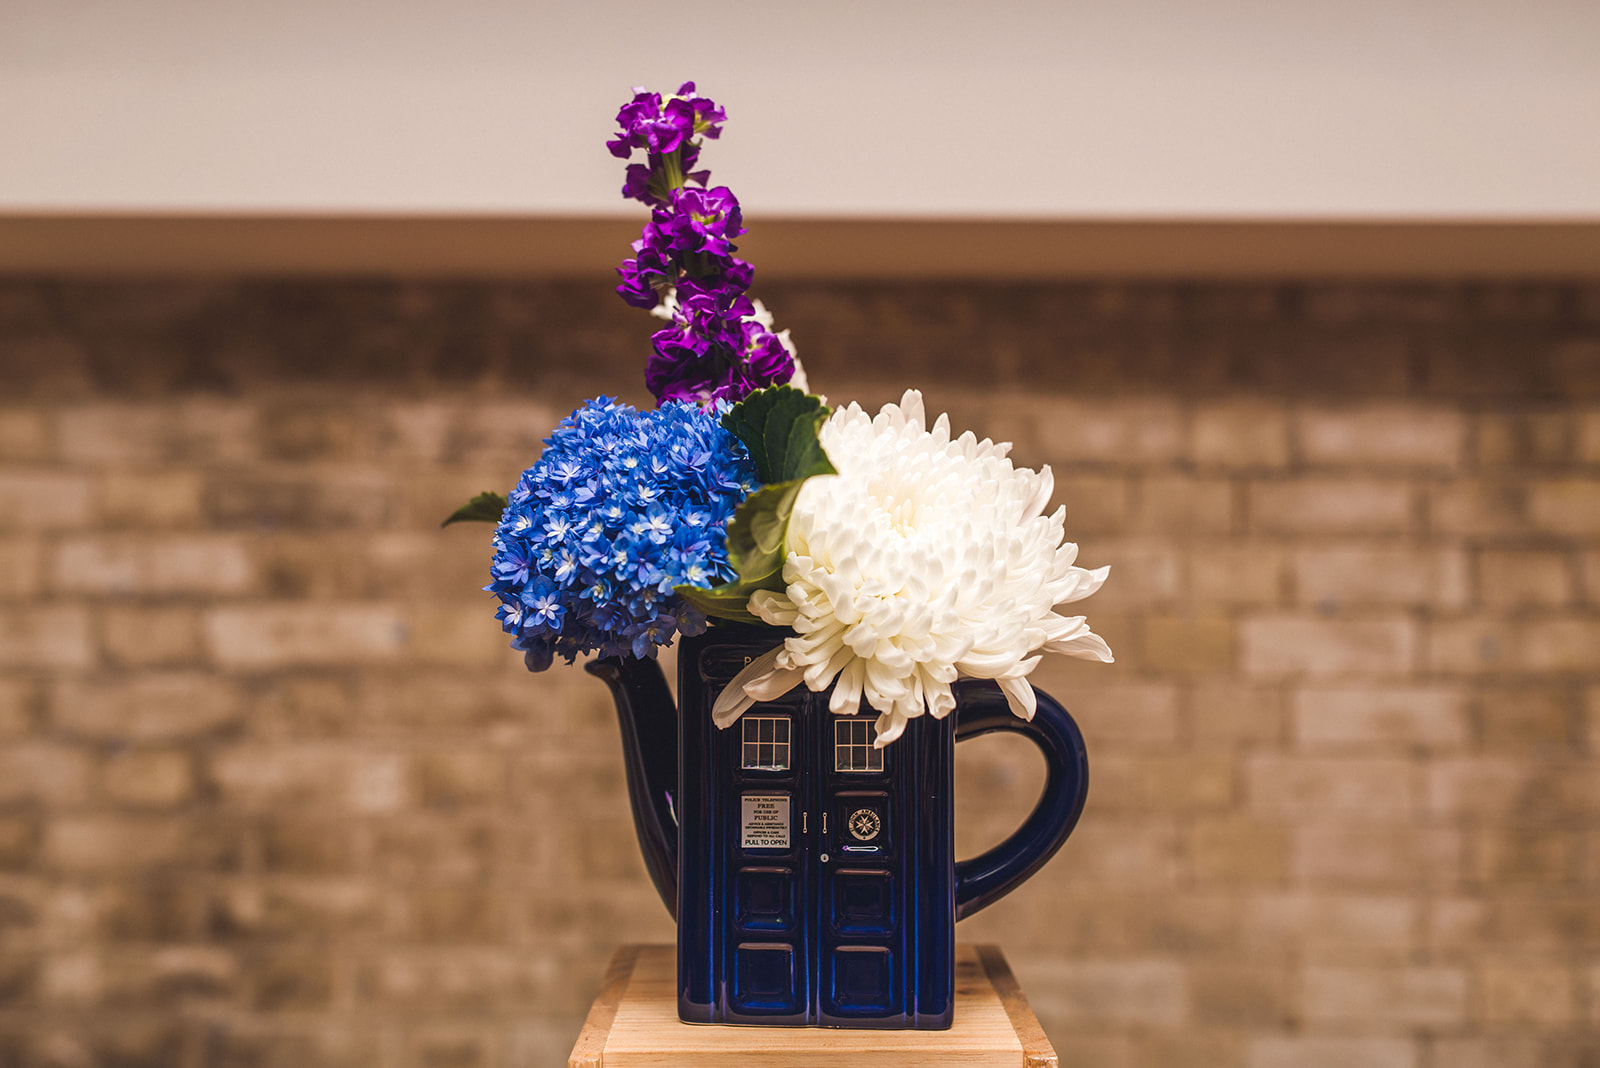 dr who vase - dr who wedding ideas - dr who wedding flowers